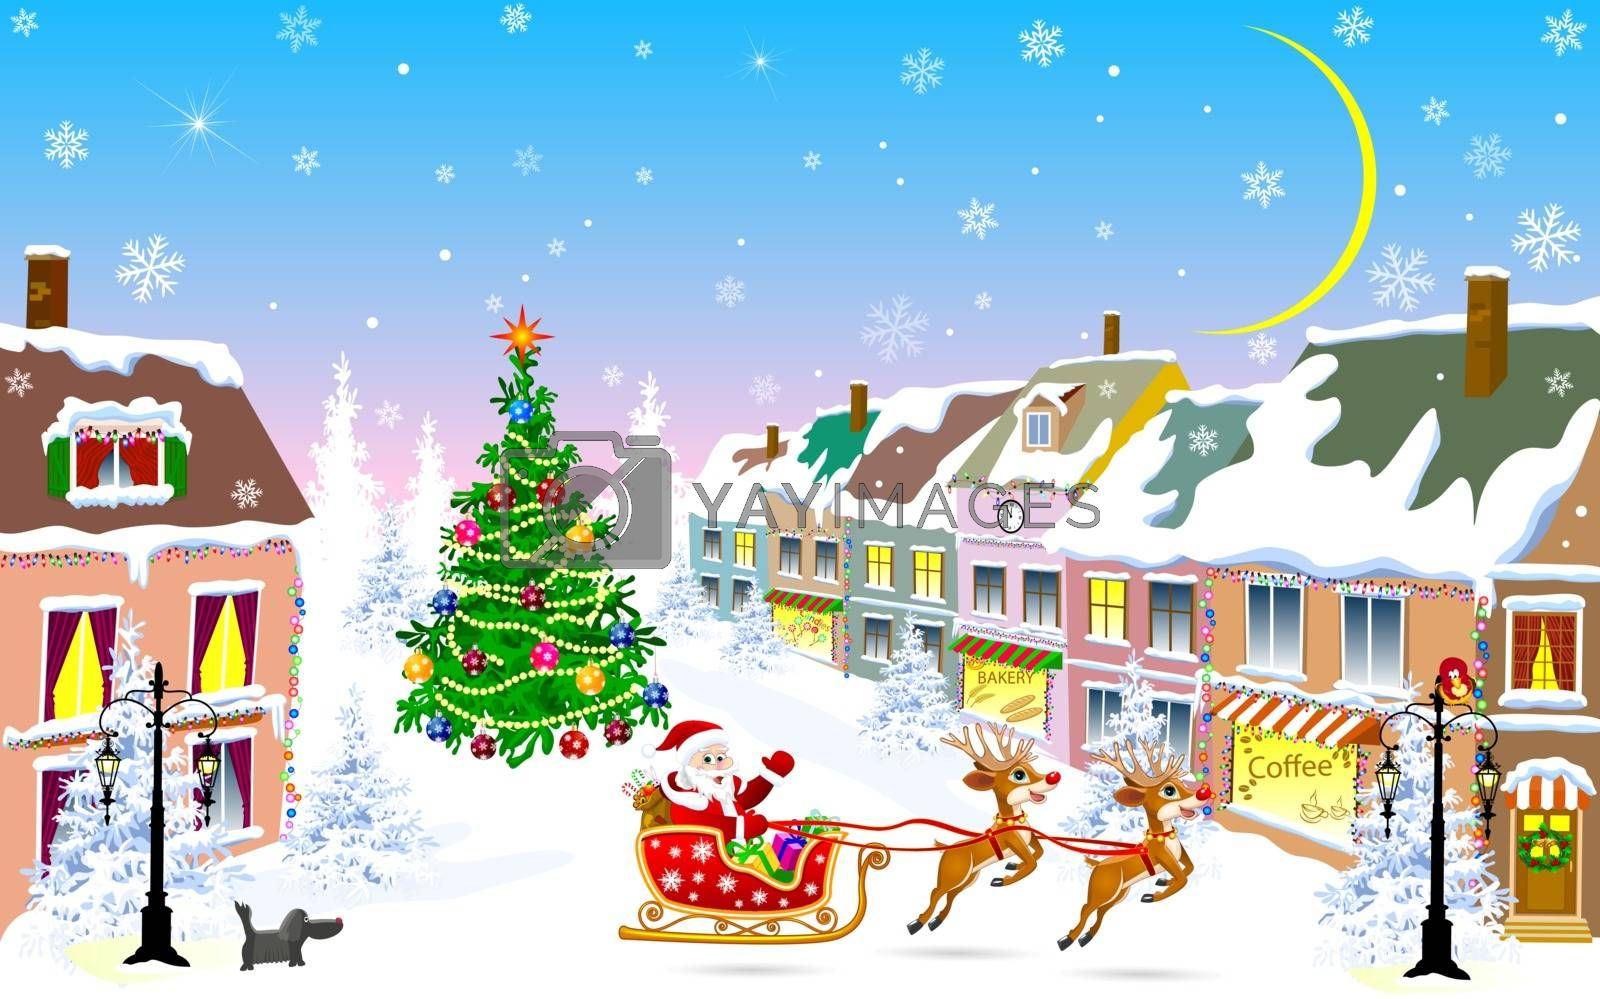 City street in the winter Christmas night. Santa Claus on a sleigh with reindeer. Christmas tree. Houses covered with snow. Winter night on Christmas Eve.